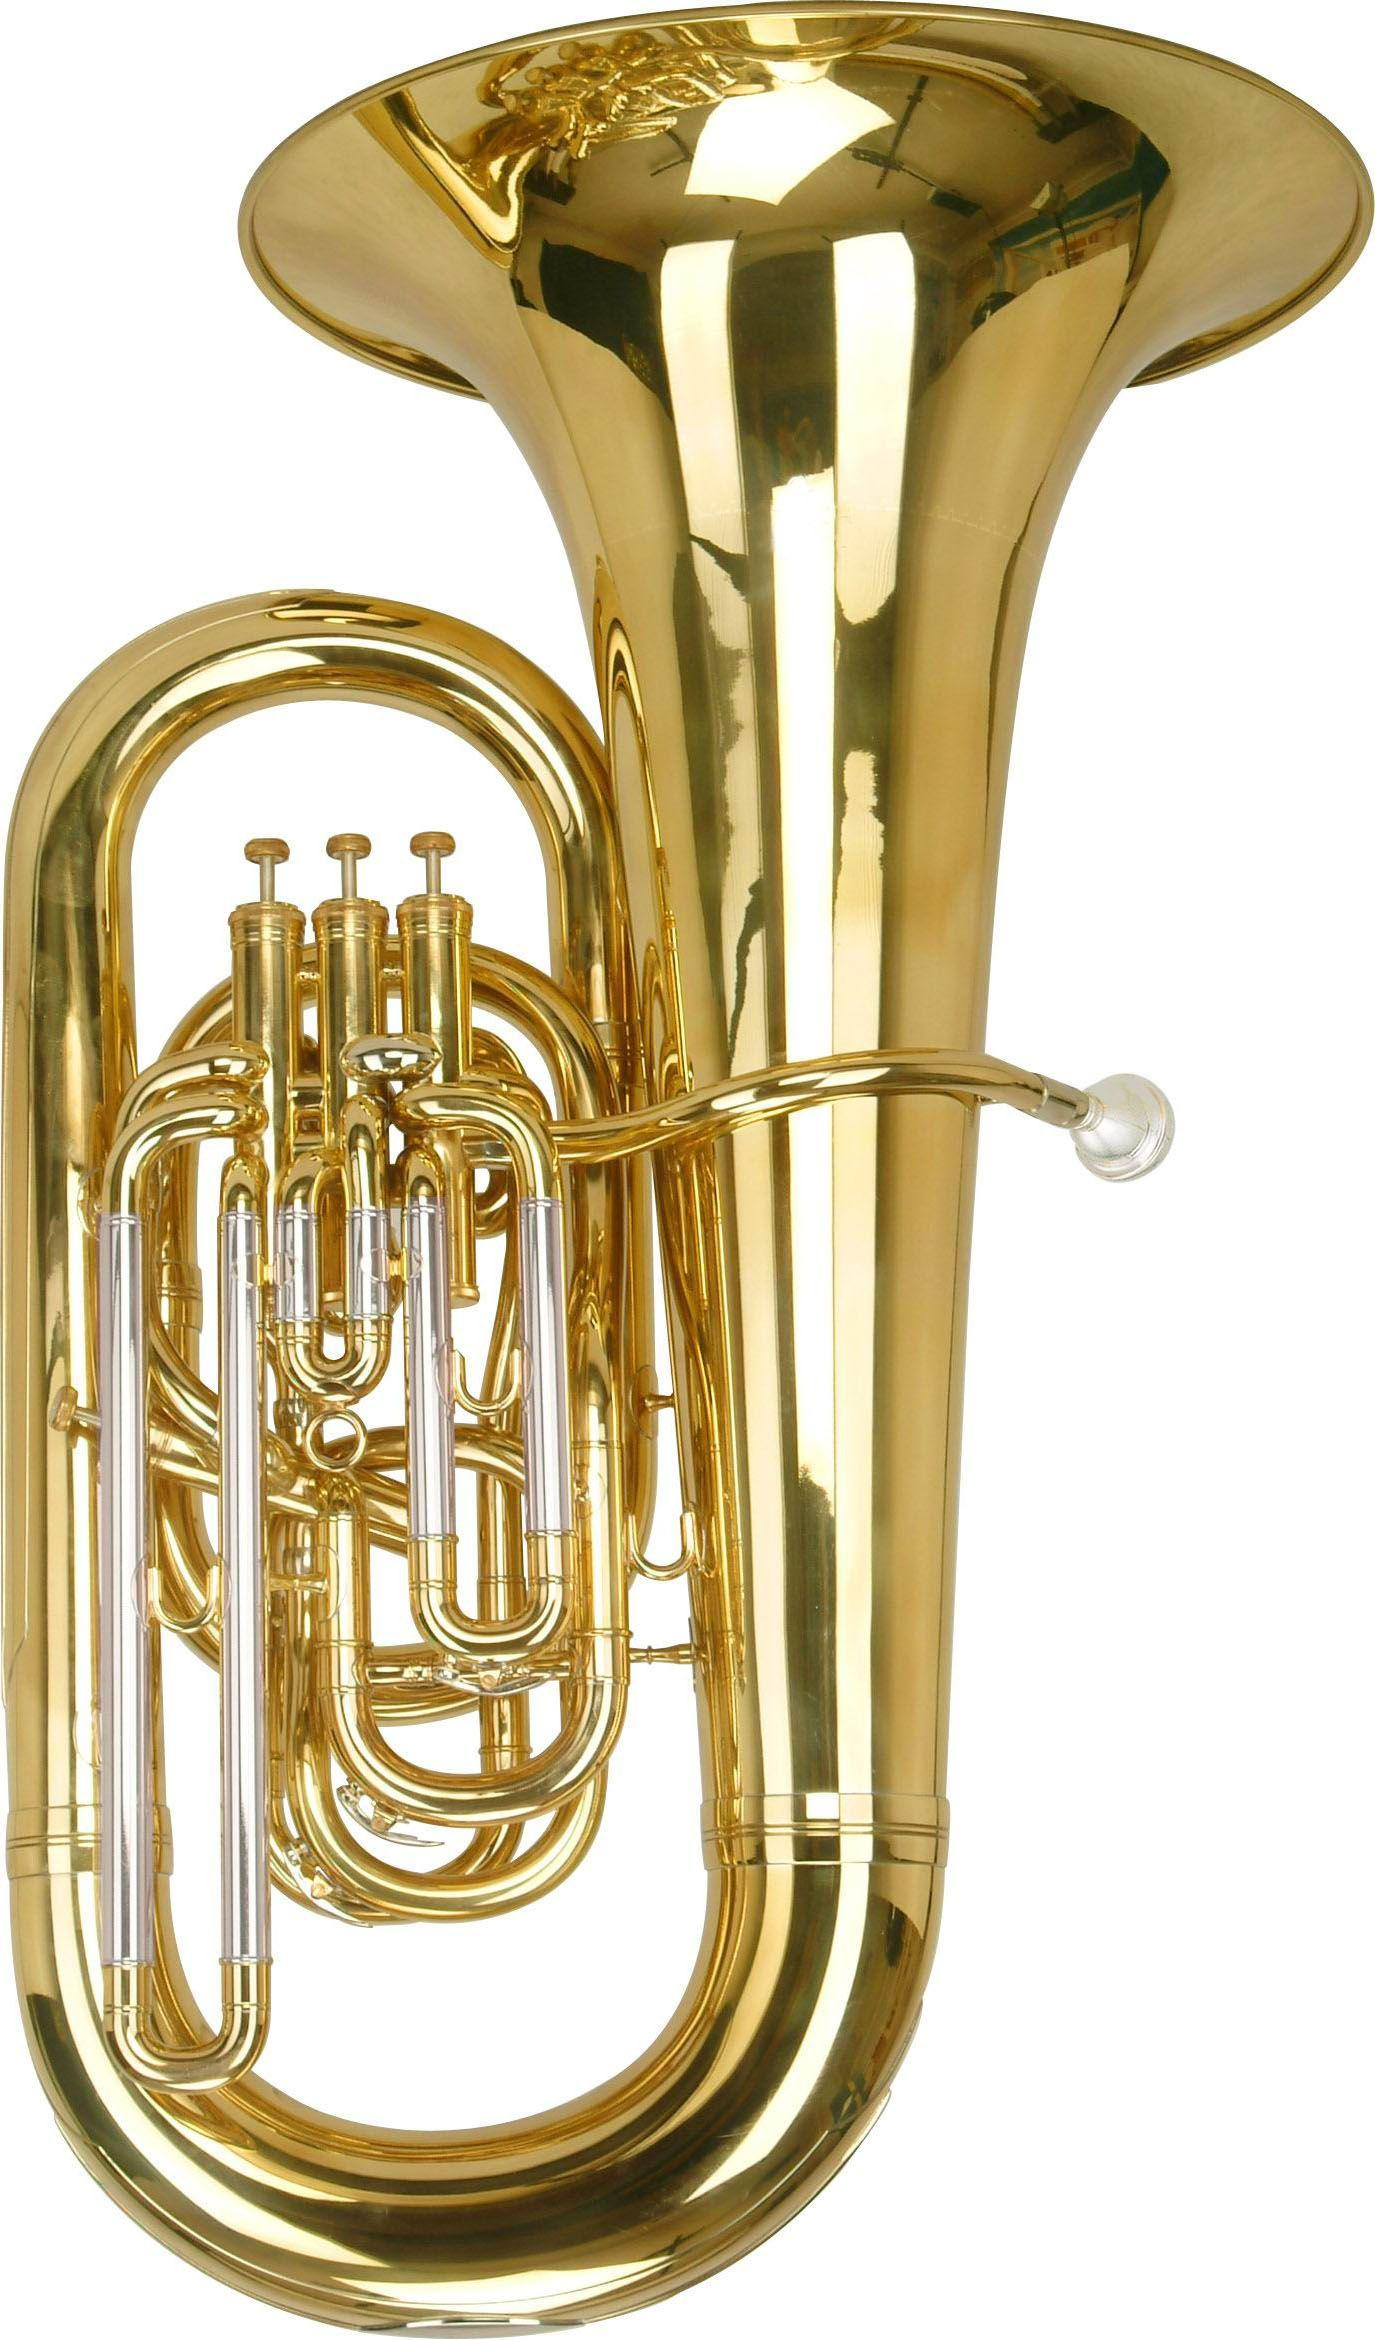 Tuba Wallpapers High Quality | Download Free